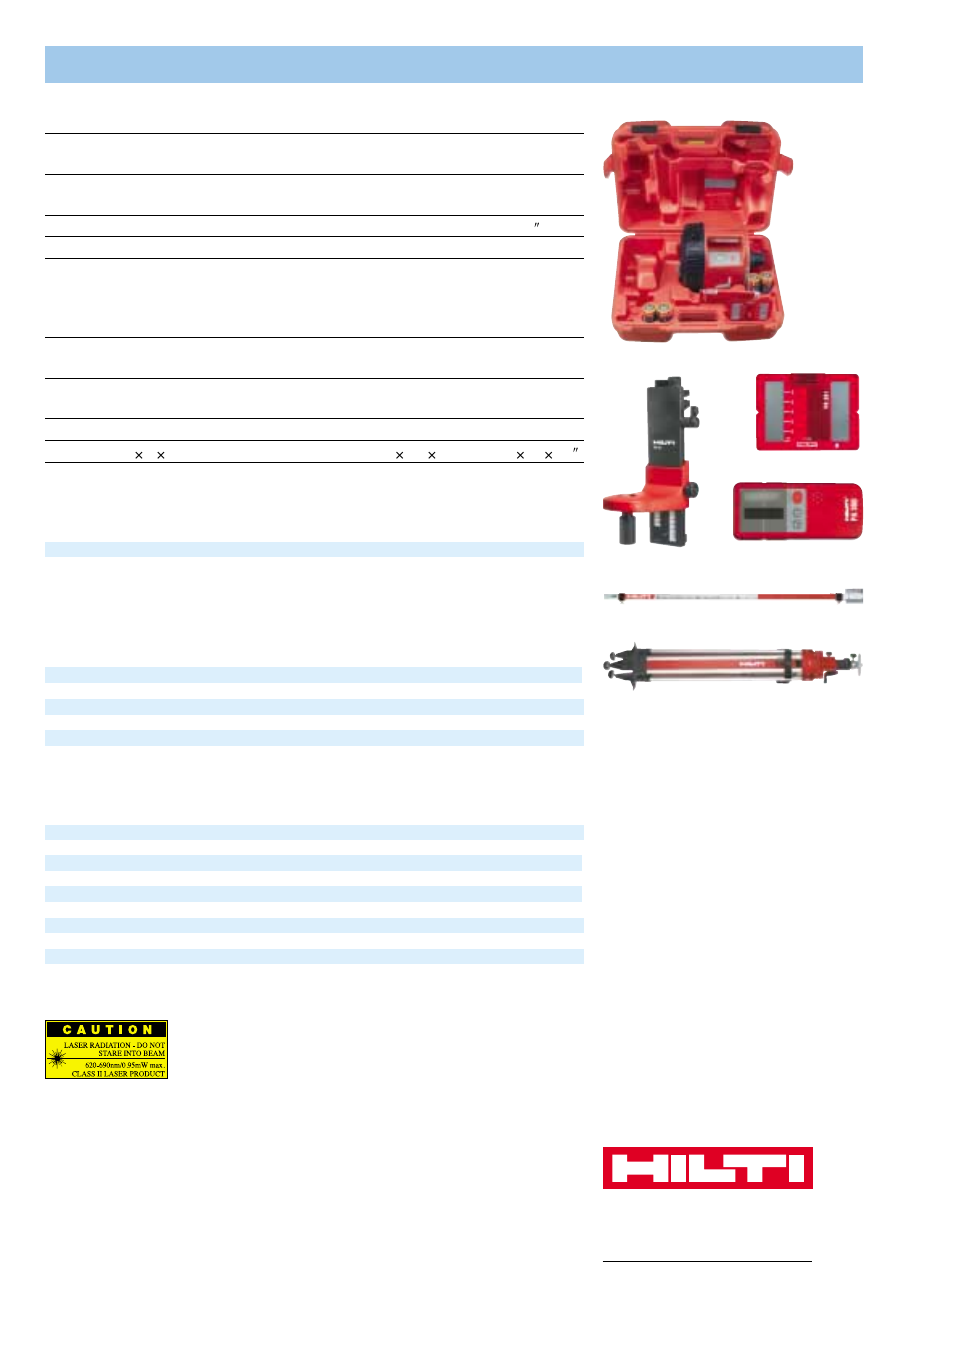 pr 16 rotating laser accessories additional accessories hilti pr rh manualsdir com Pr16 Pressure Switch Oracle SOA Administrator Guide